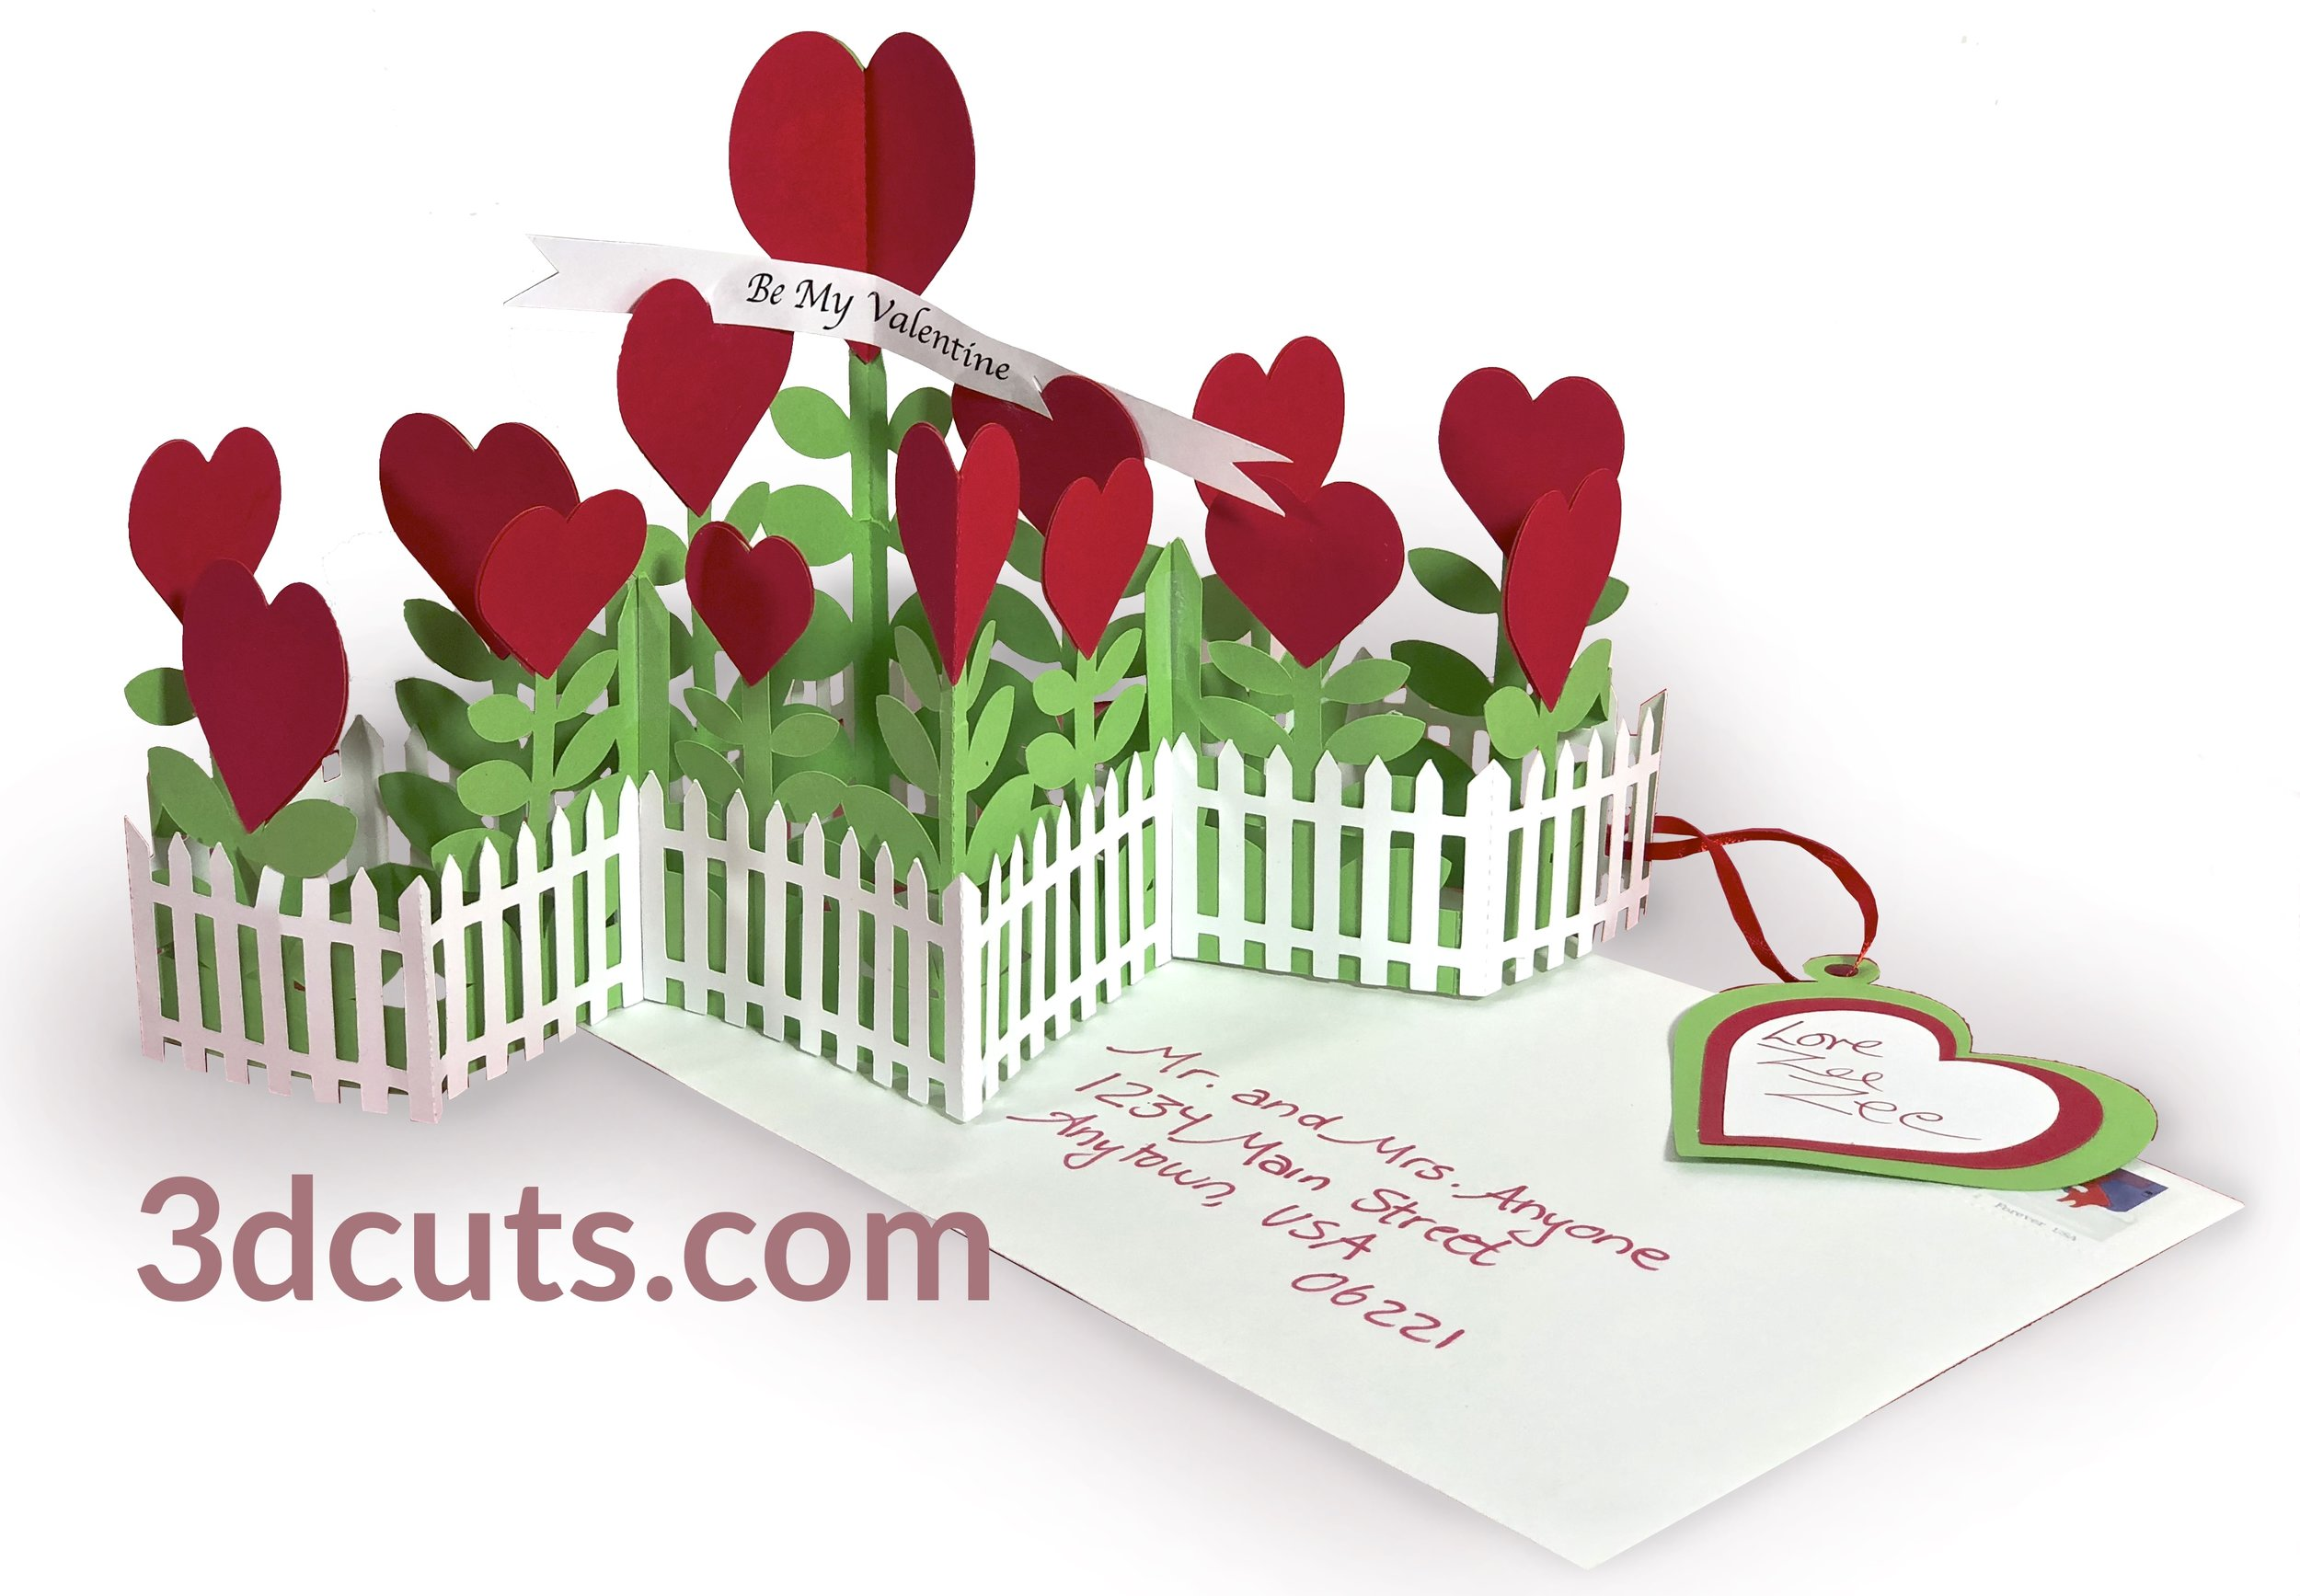 Valentine Zig Zag Card, ©3DCuts.com, Marji Roy, 3D cutting files in .svg, .dxf, and .pdf formats for use with Silhouette, Cricut and other cutting machines, paper crafting files